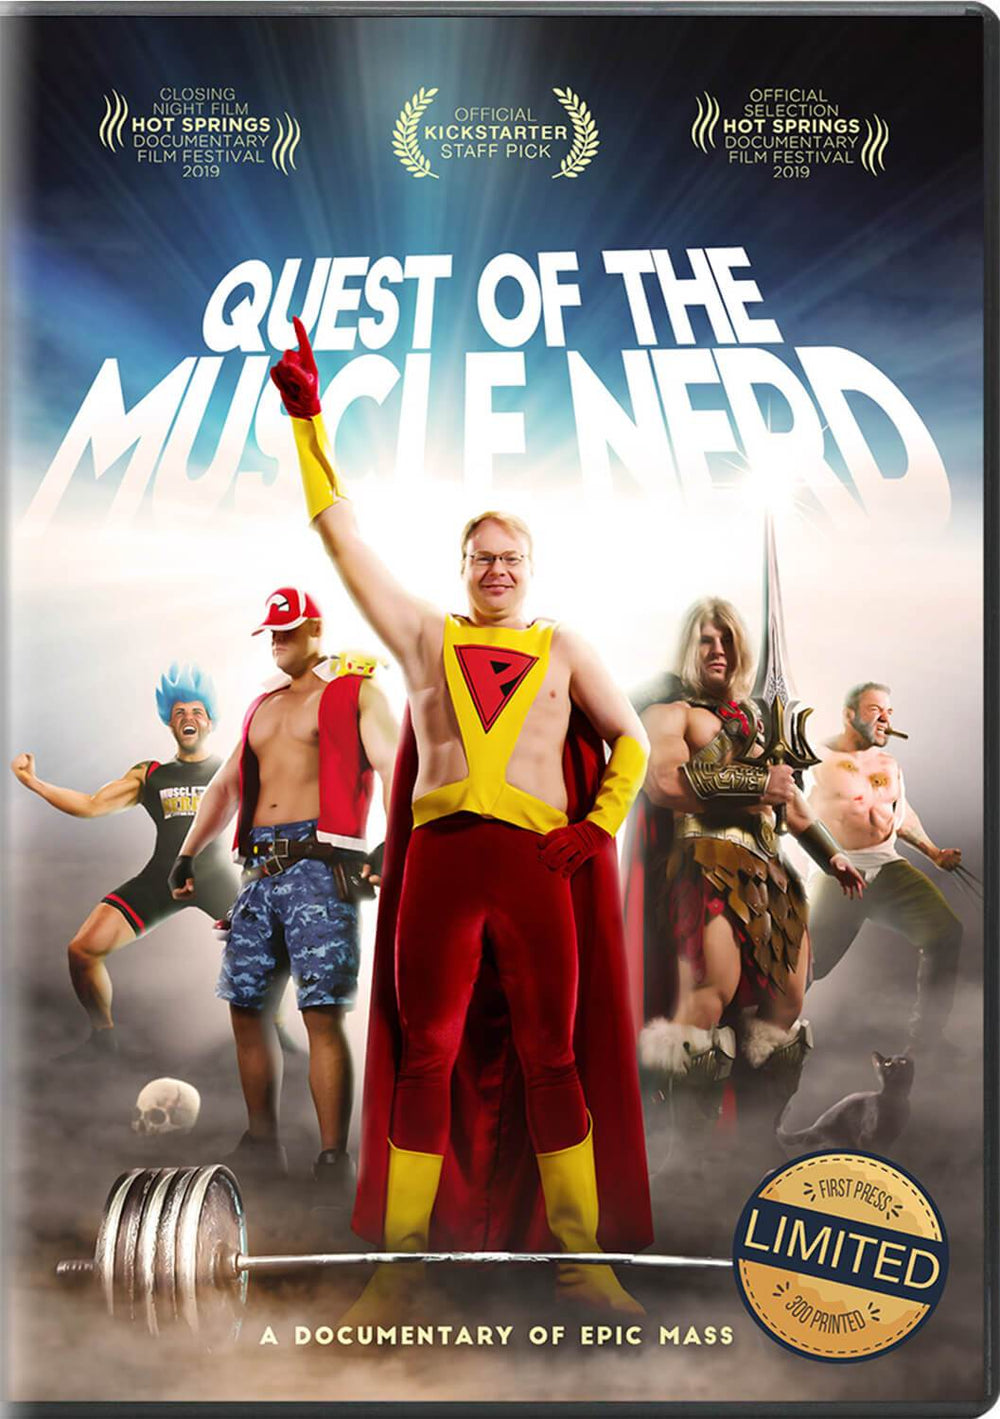 Quest of the Muscle Nerd DVD DVD by Muscle Nerd - Pixel Empire